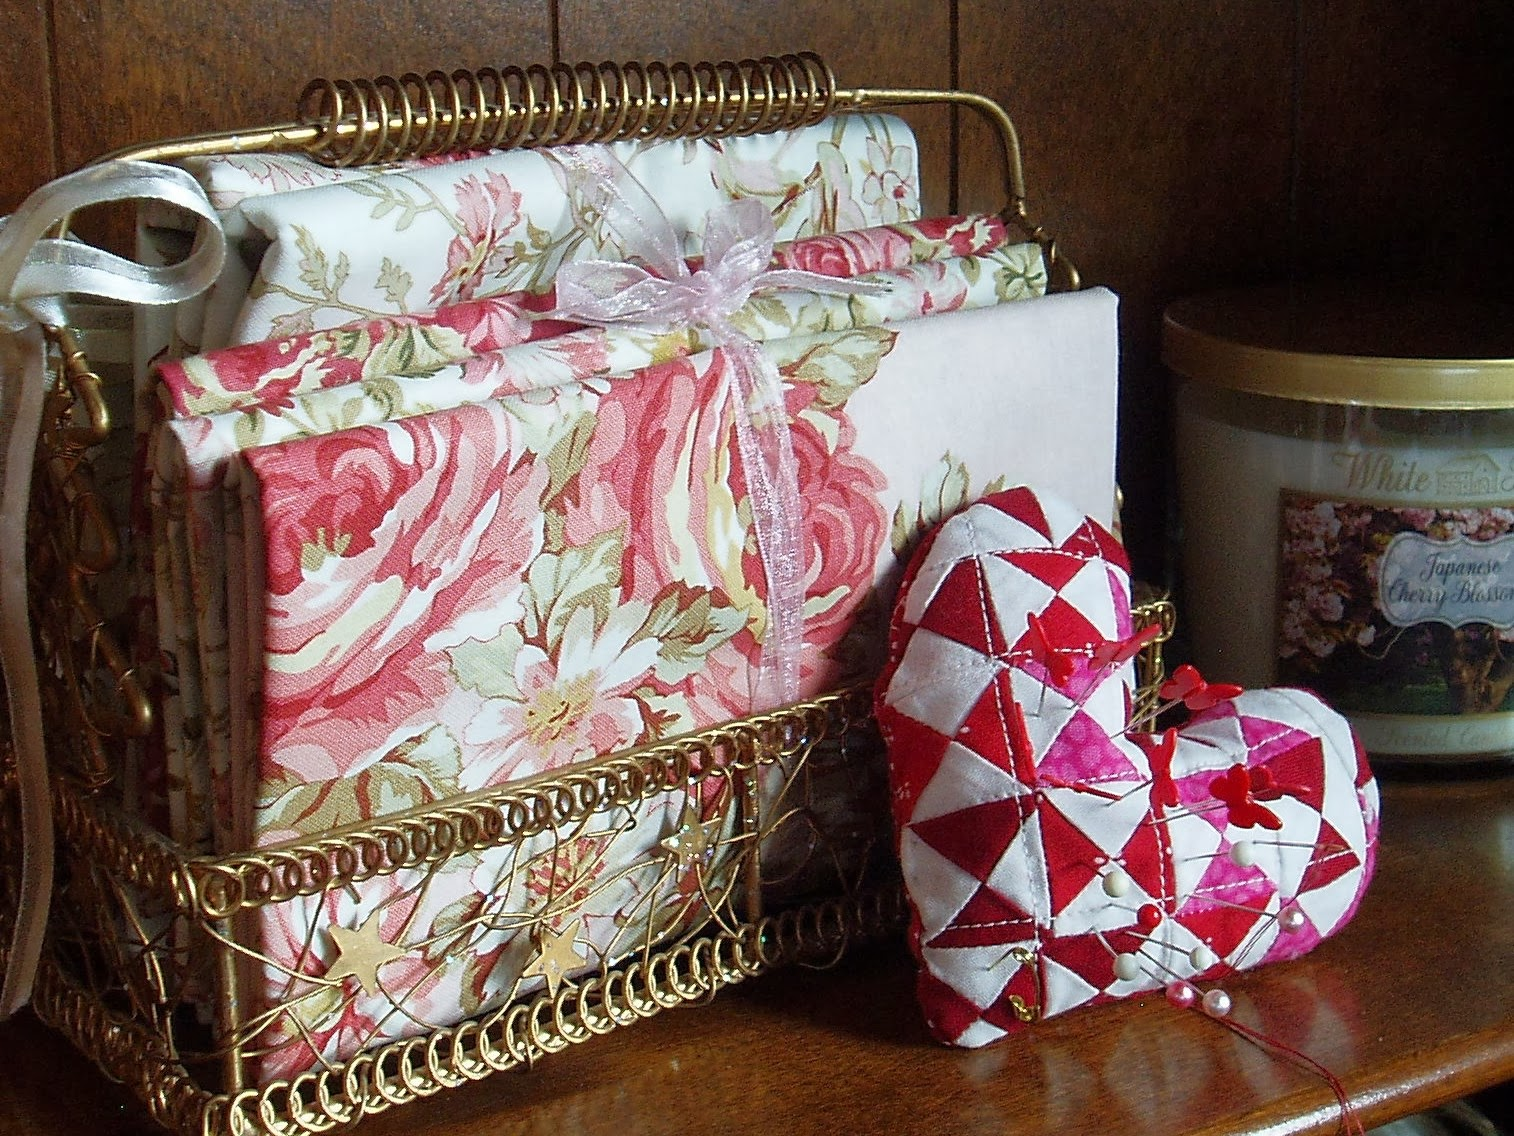 http://sunshineintheattic.blogspot.com/2014/02/valentine-heart-pin-cushion-tutorial-or.html